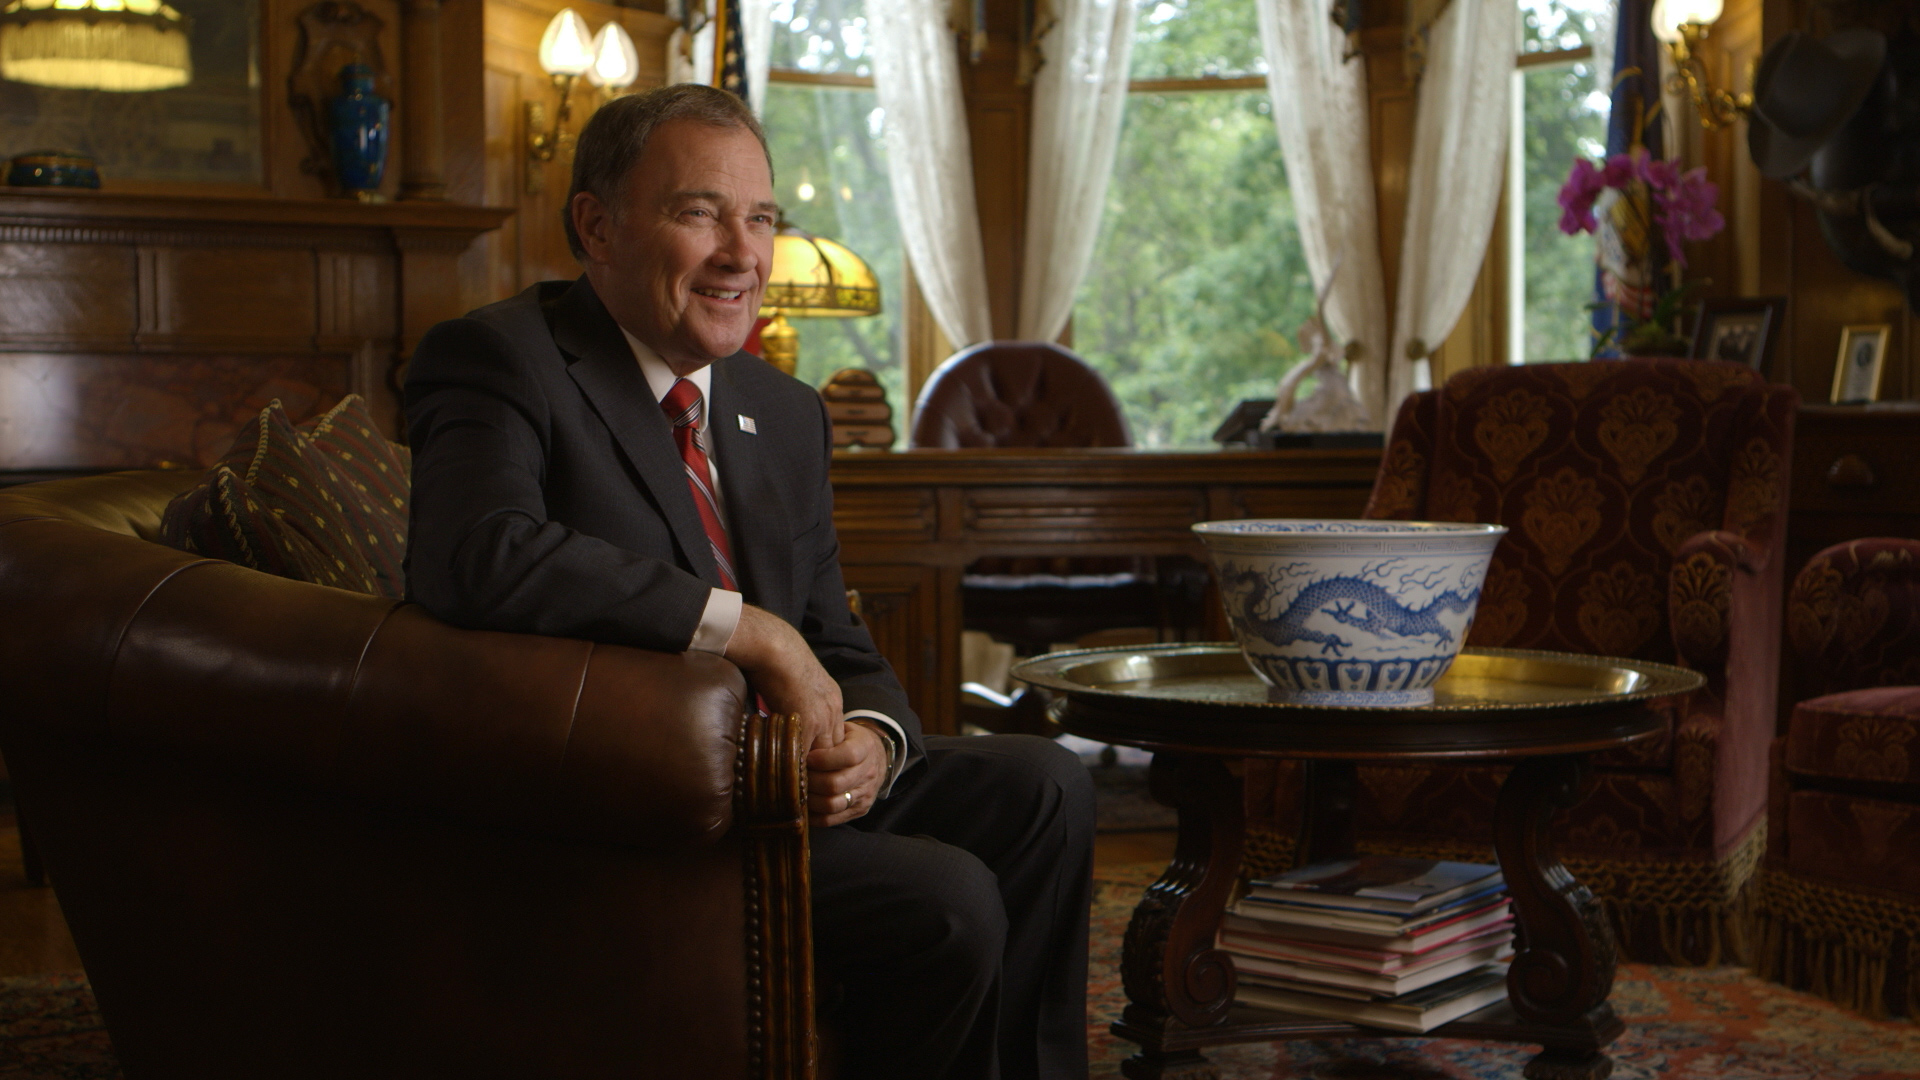 An interview with Gary Herbert, the current Governor of Utah